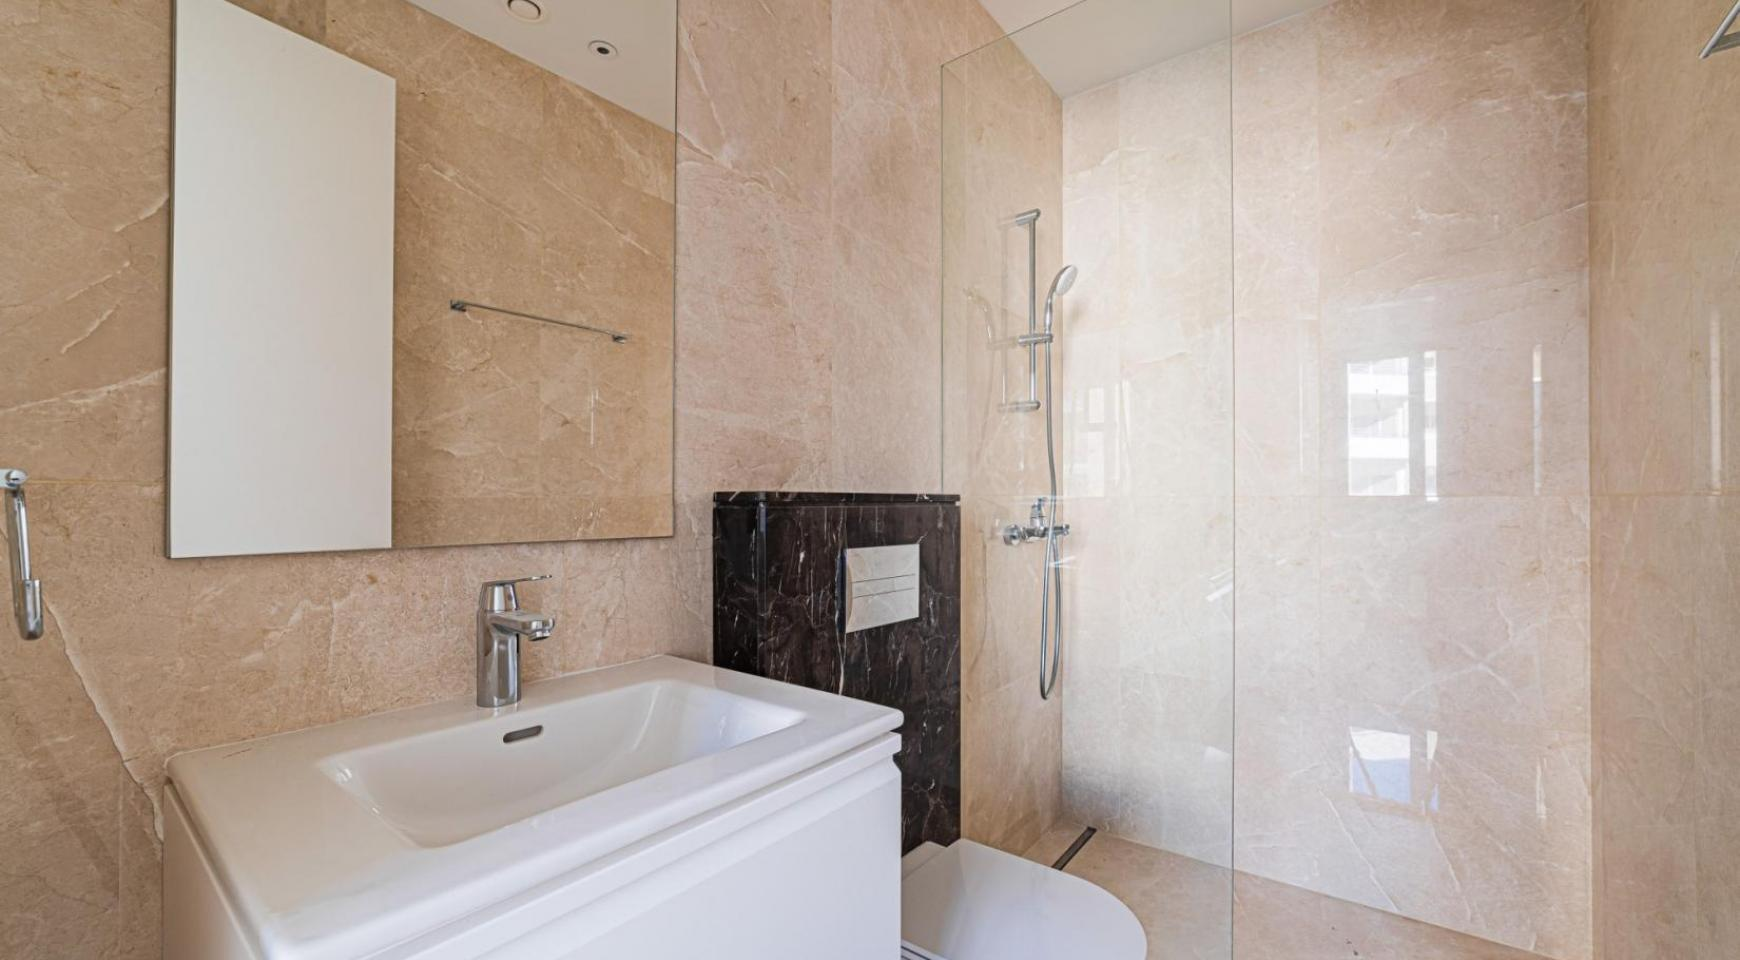 Hortensia Residence, Apt. 103. 3 Bedroom Apartment within a New Complex near the Sea  - 41